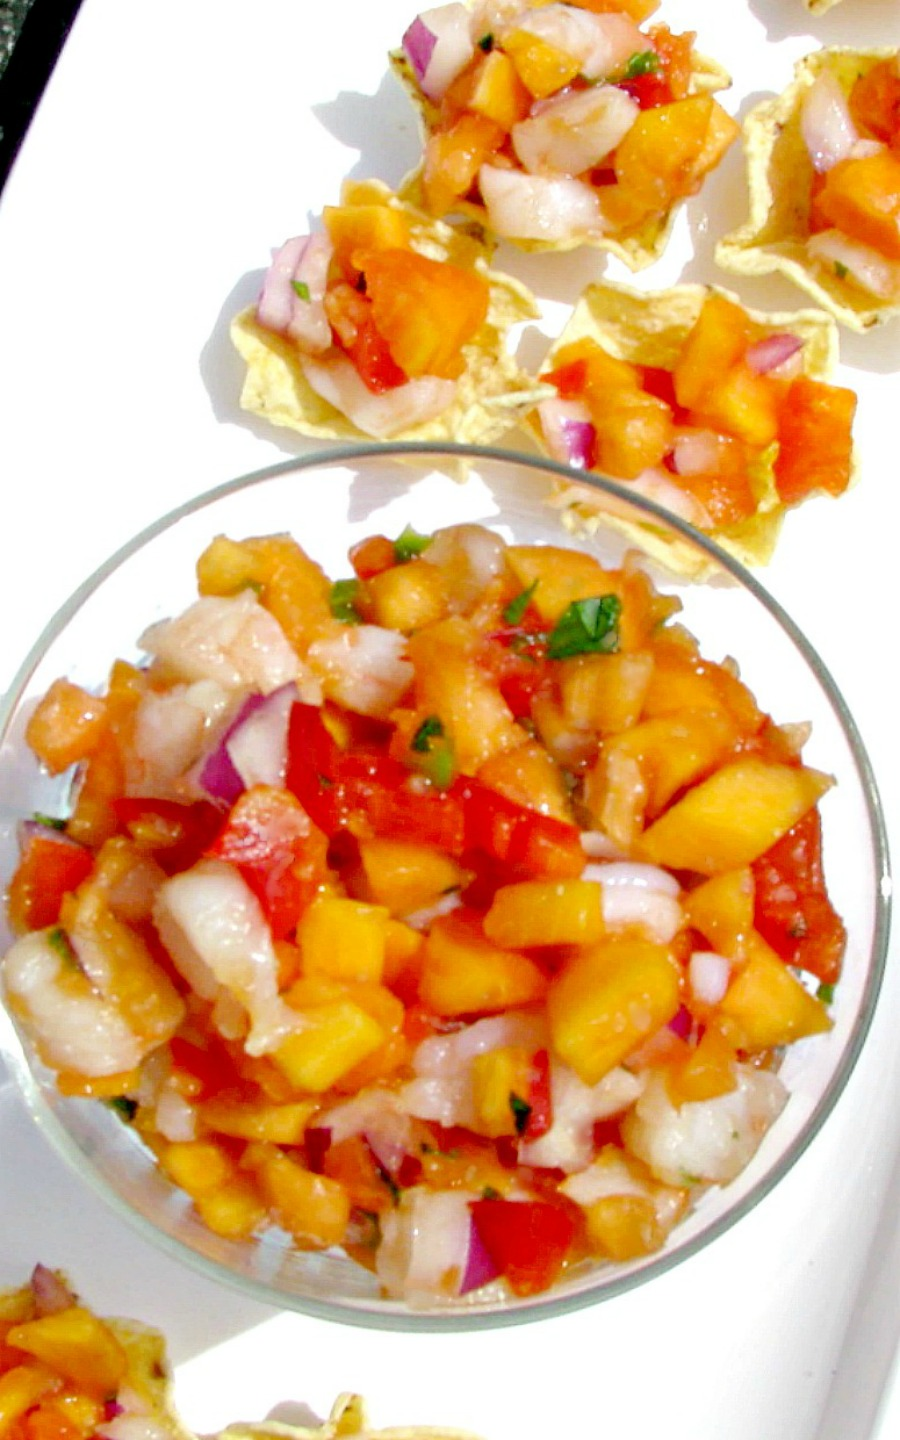 Shrimp and Papaya Salsa- Sweet papaya, chopped shrimp, onions, and jalapeno give you all the great tastes of summer. This recipe feeds a crowd, great for summertime cookouts!